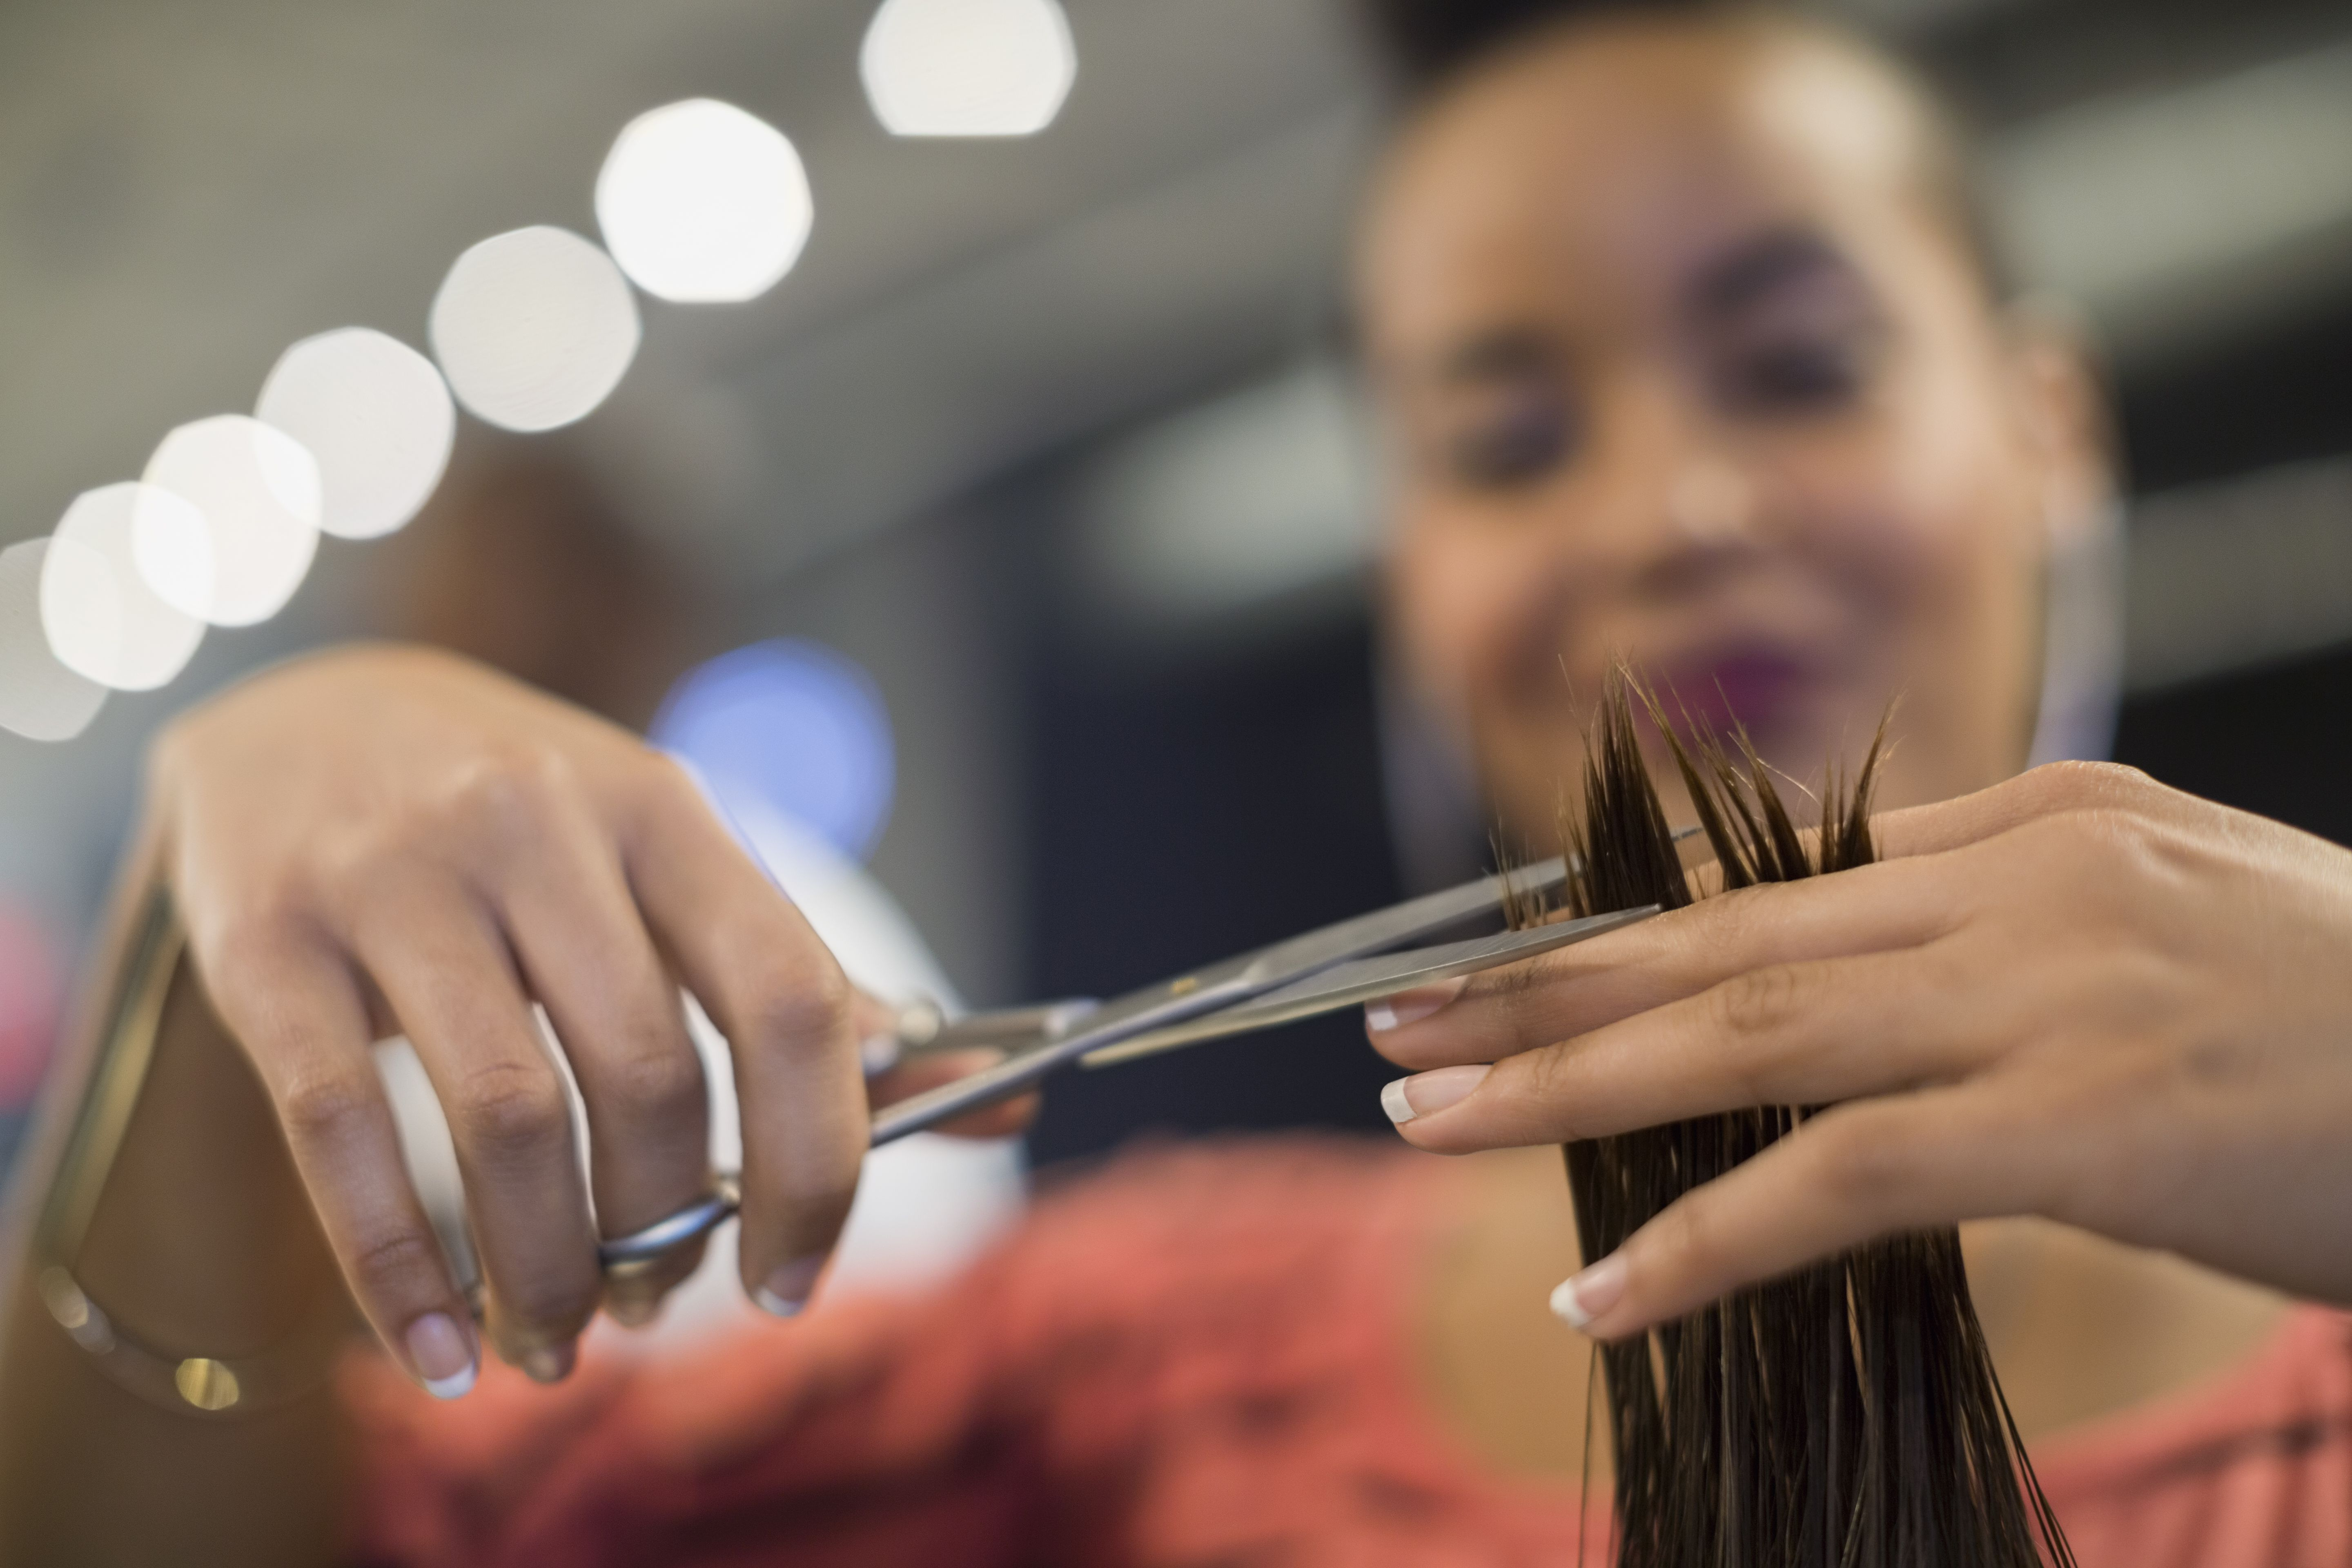 What No One Tells You About Being A Hairstylist